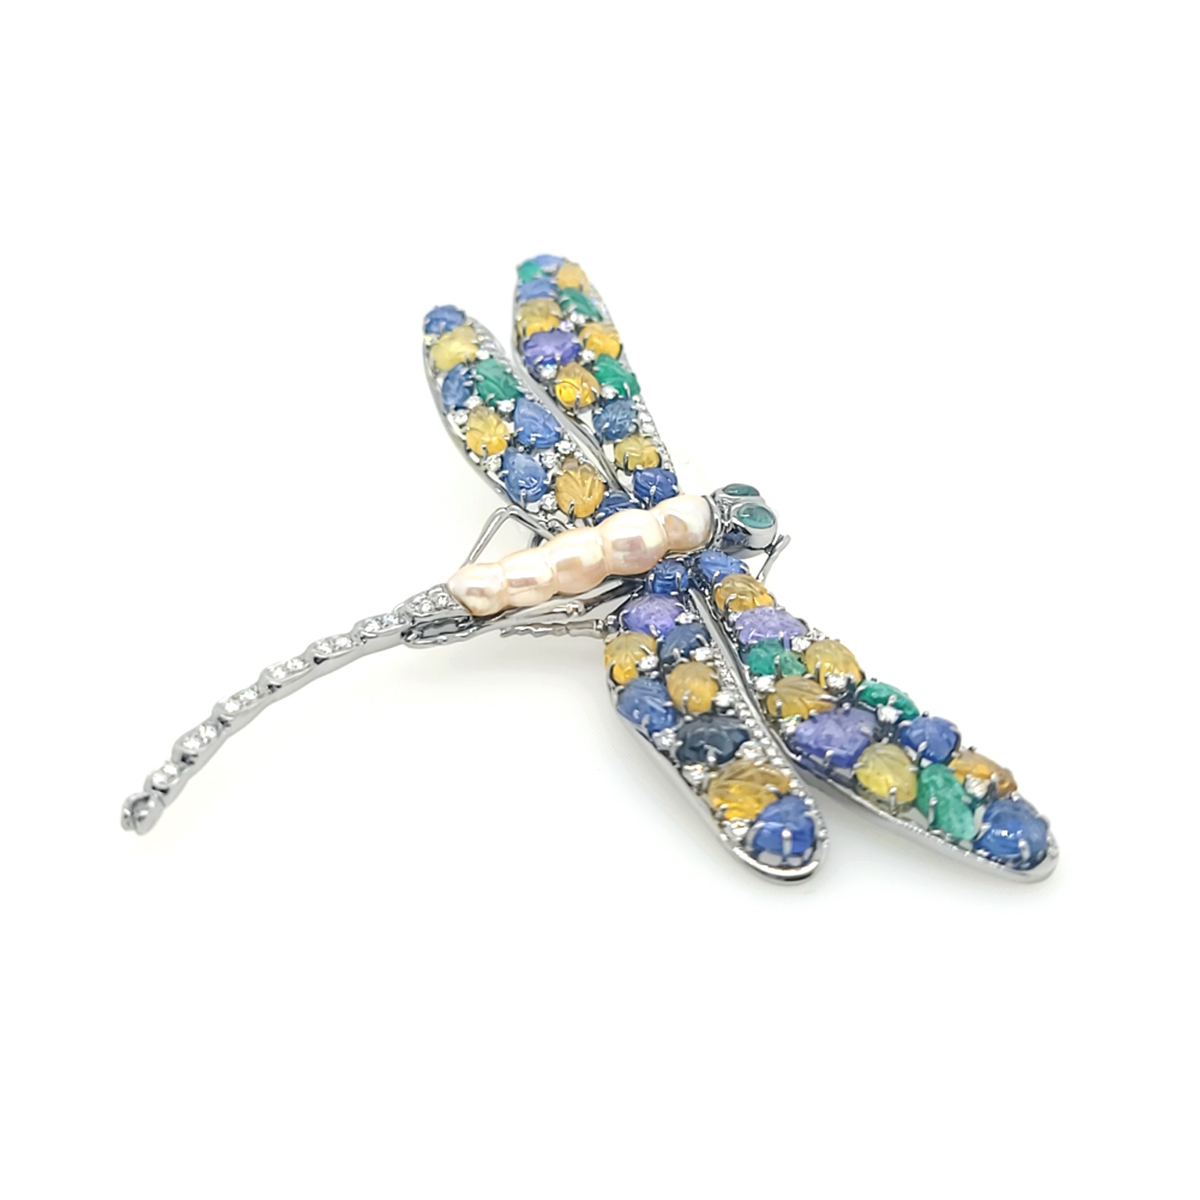 Vintage 18 Karat White Gold Sapphire, Emerald and Diamond Dragonfly Pin